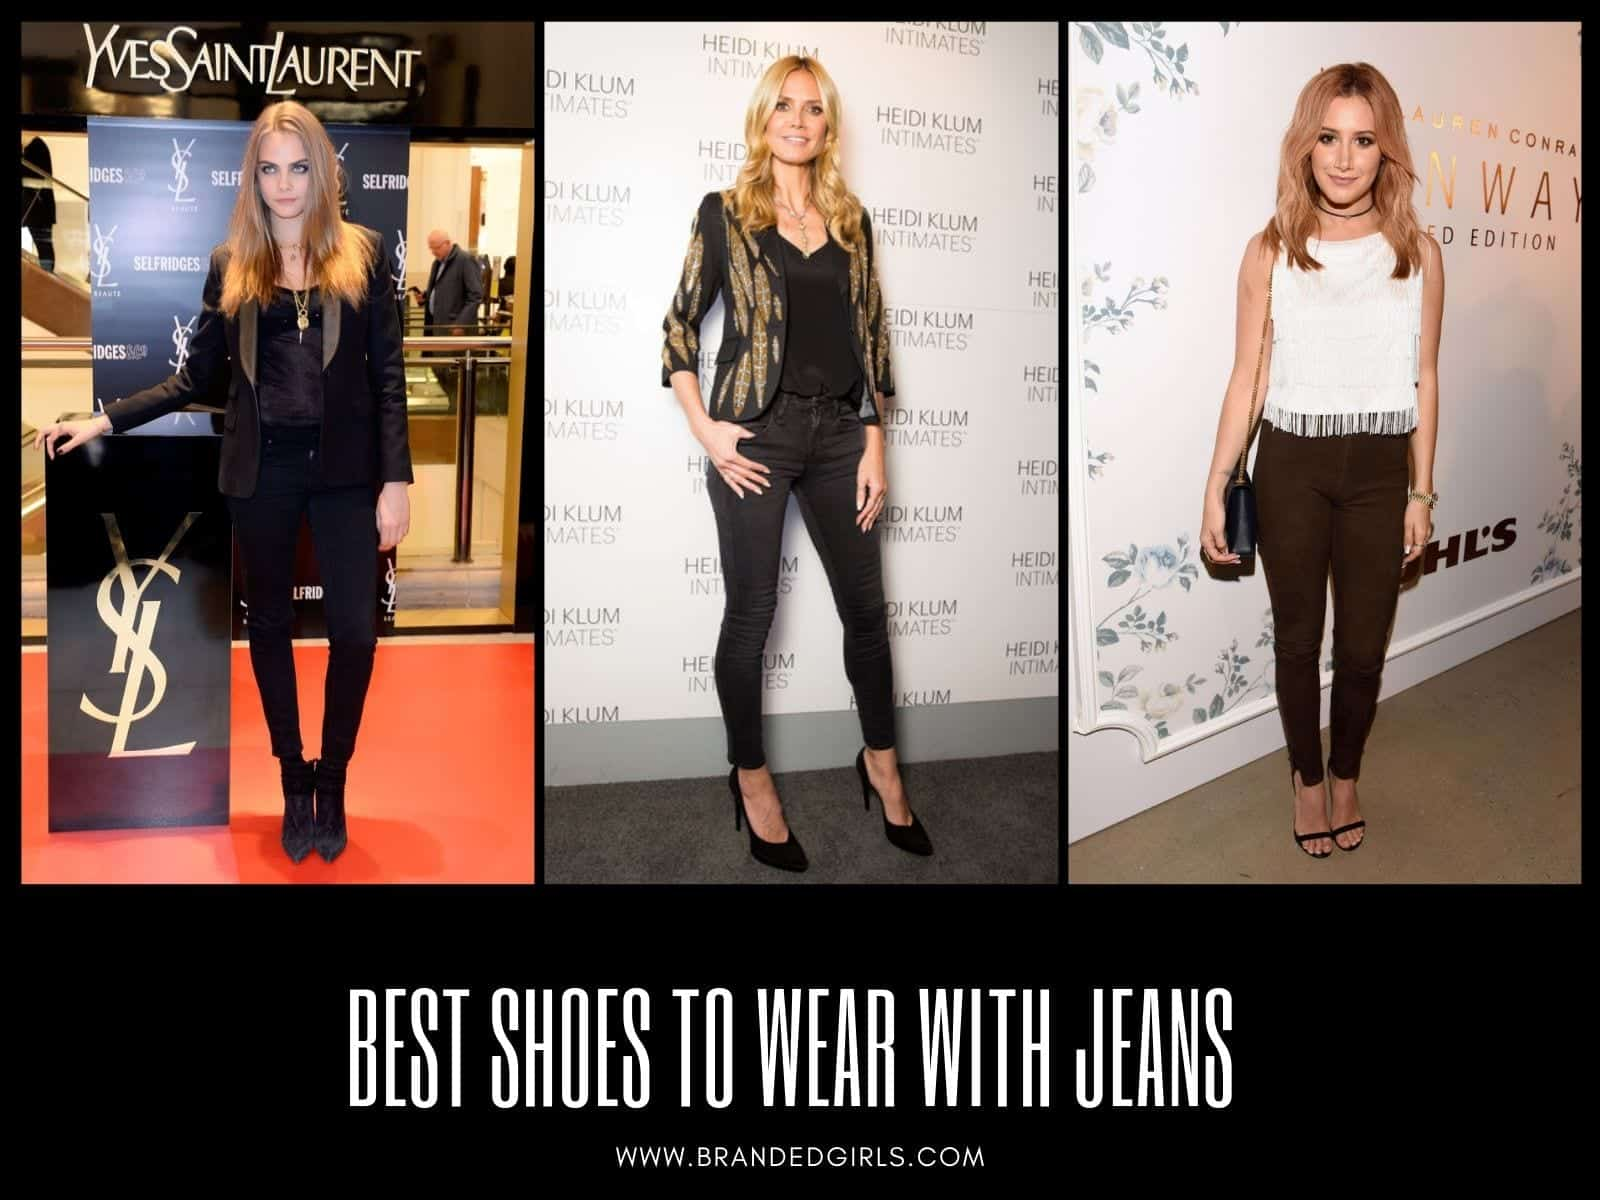 Best-Shoes 25 Best Shoes to Wear with Jeans for Different Looks